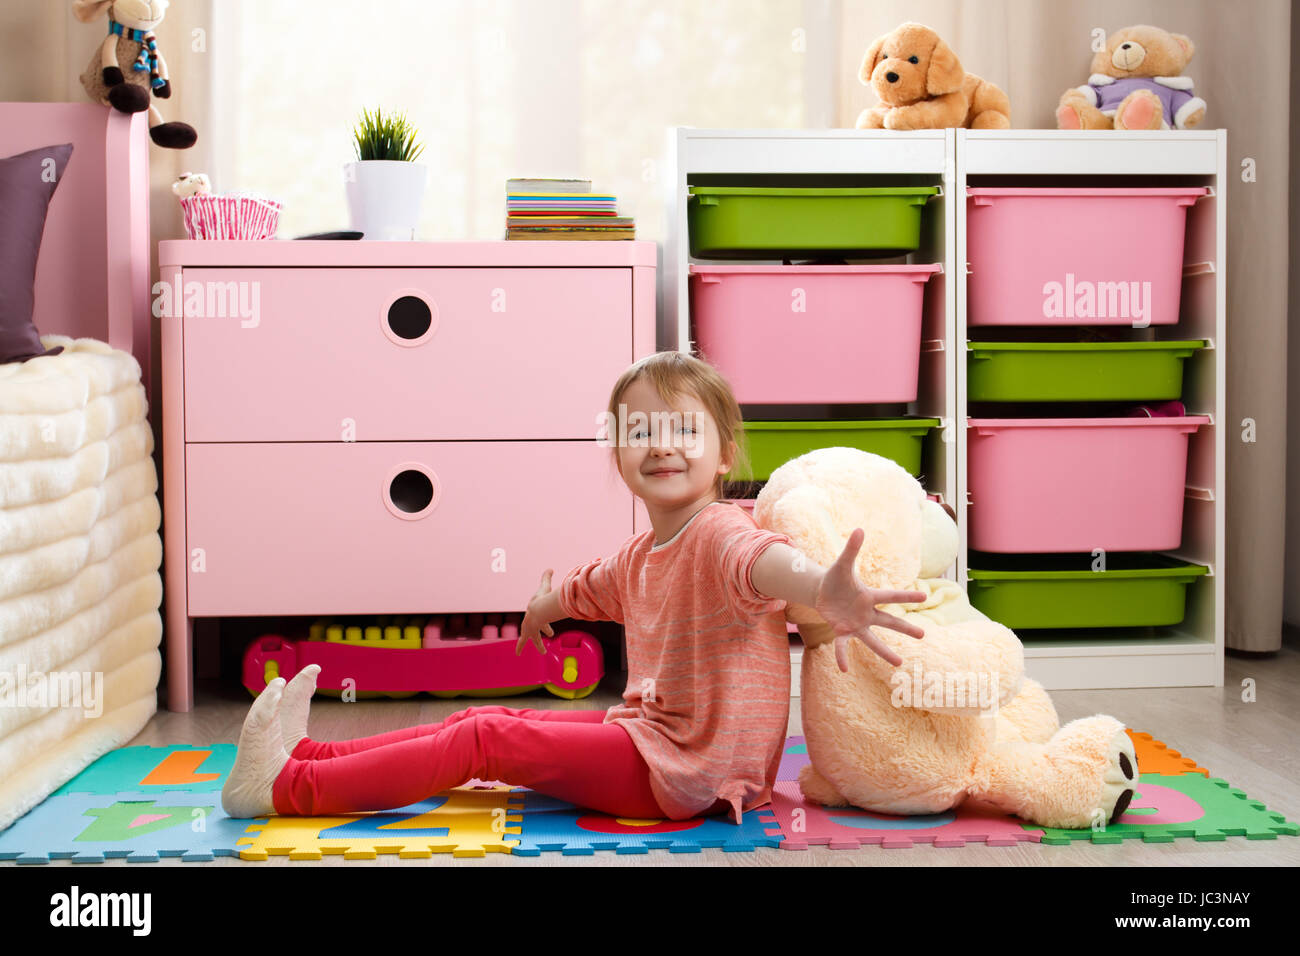 Cute little girl with a big teddy bear sitting on the floor in the children's room - Stock Image